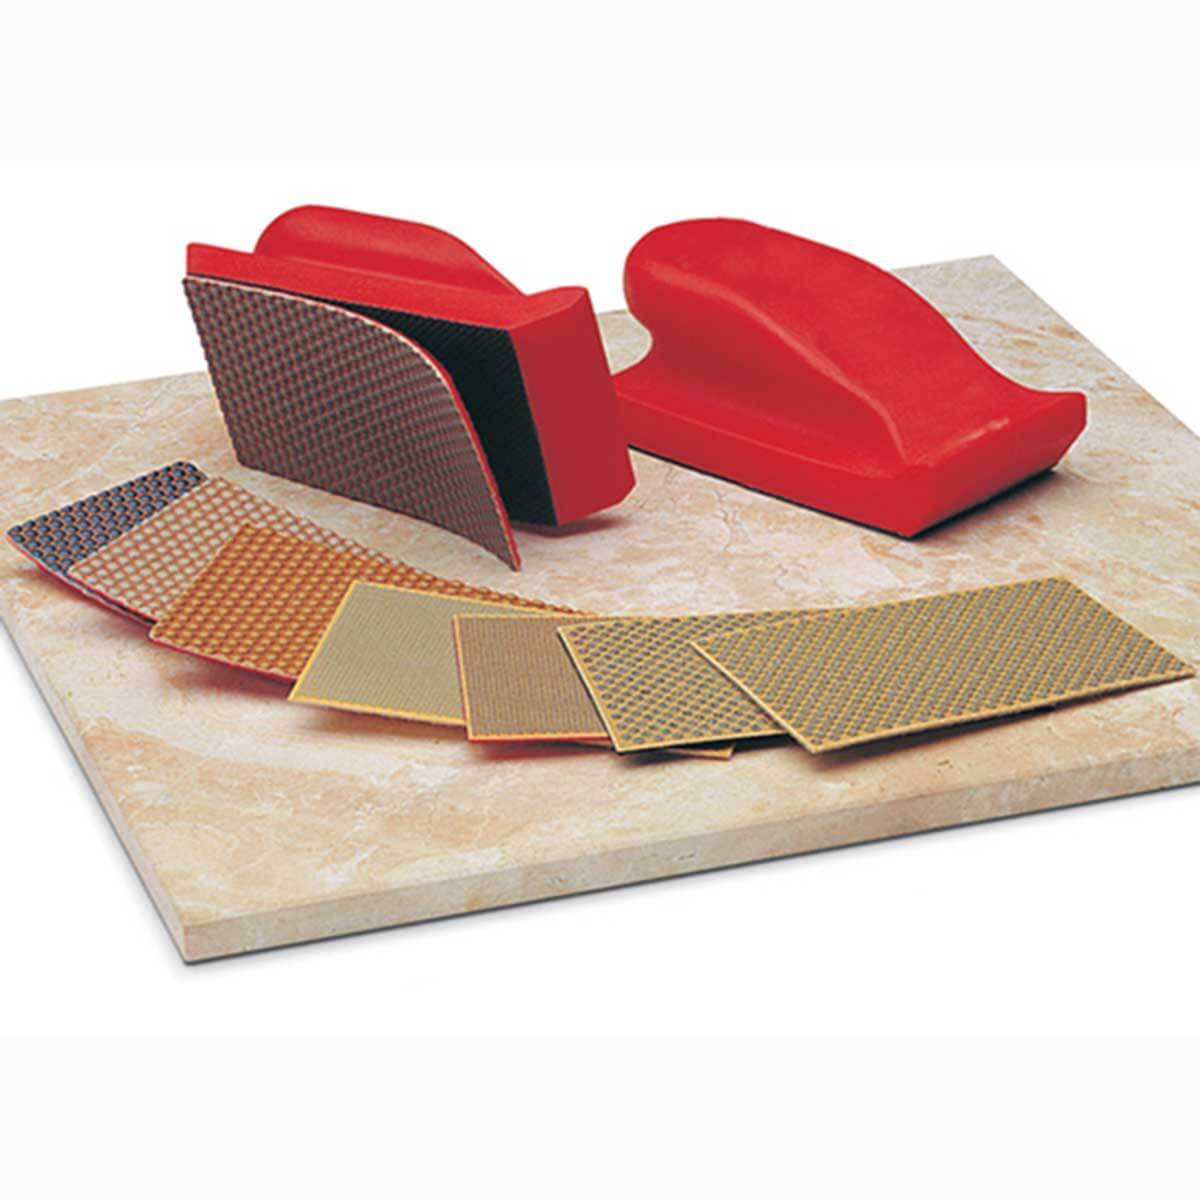 Diamond Polishing Hand Pad 8 Piece Kit